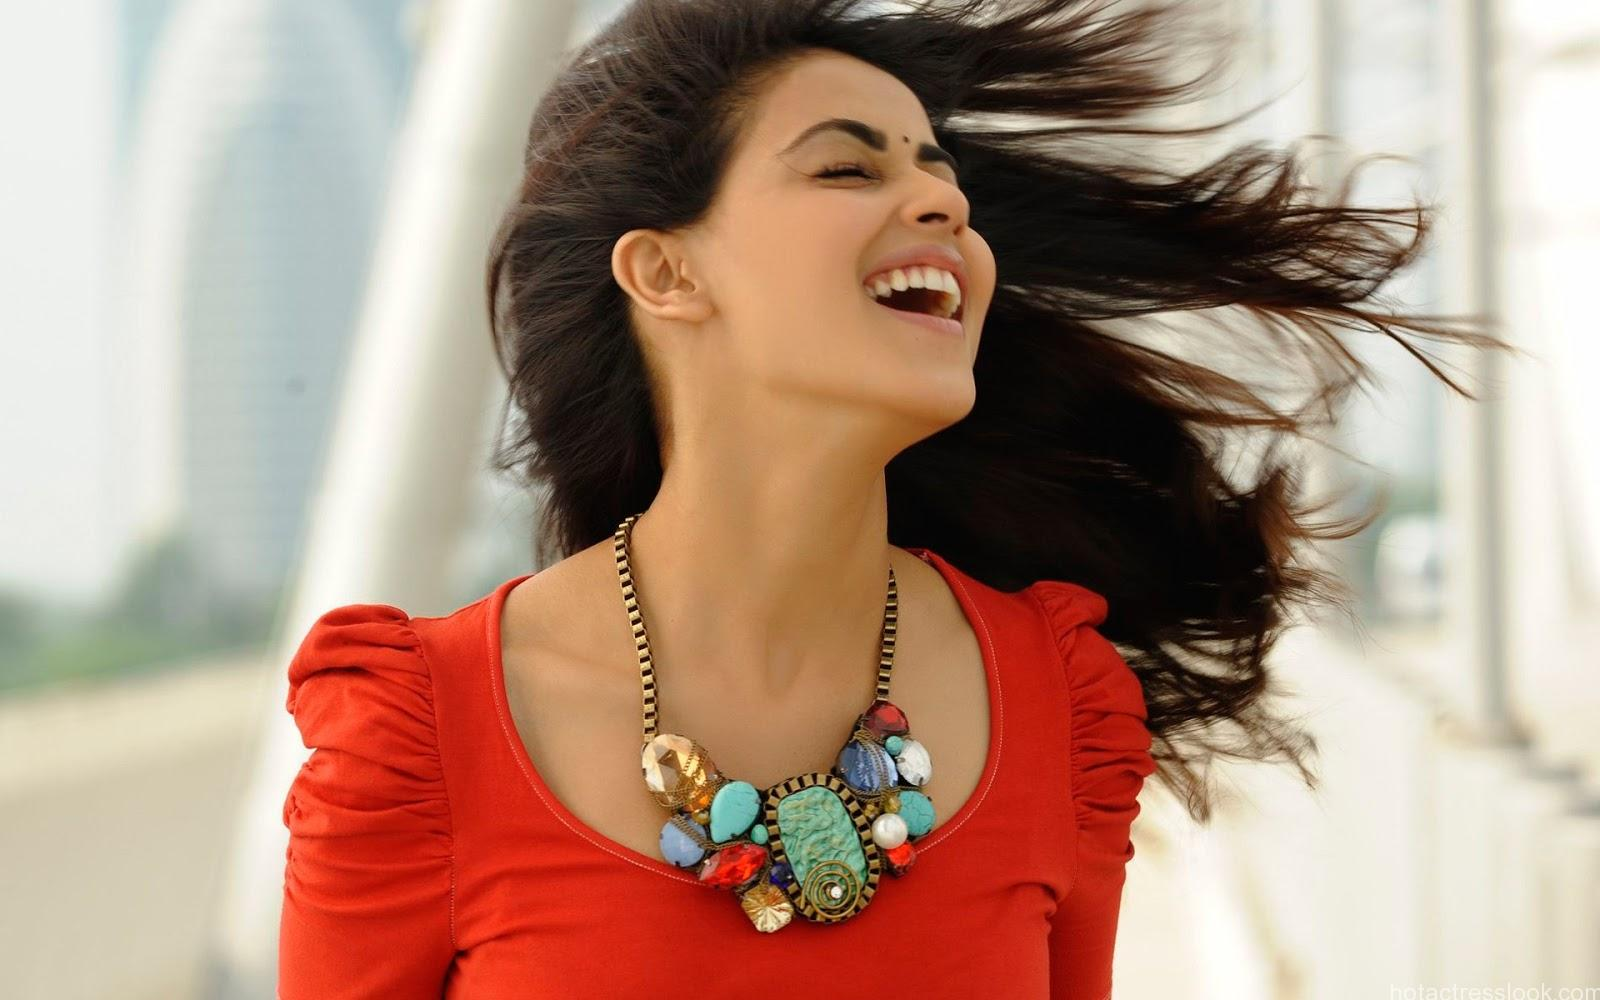 Genelia D'Souza cute smiling Hd Wallpapers